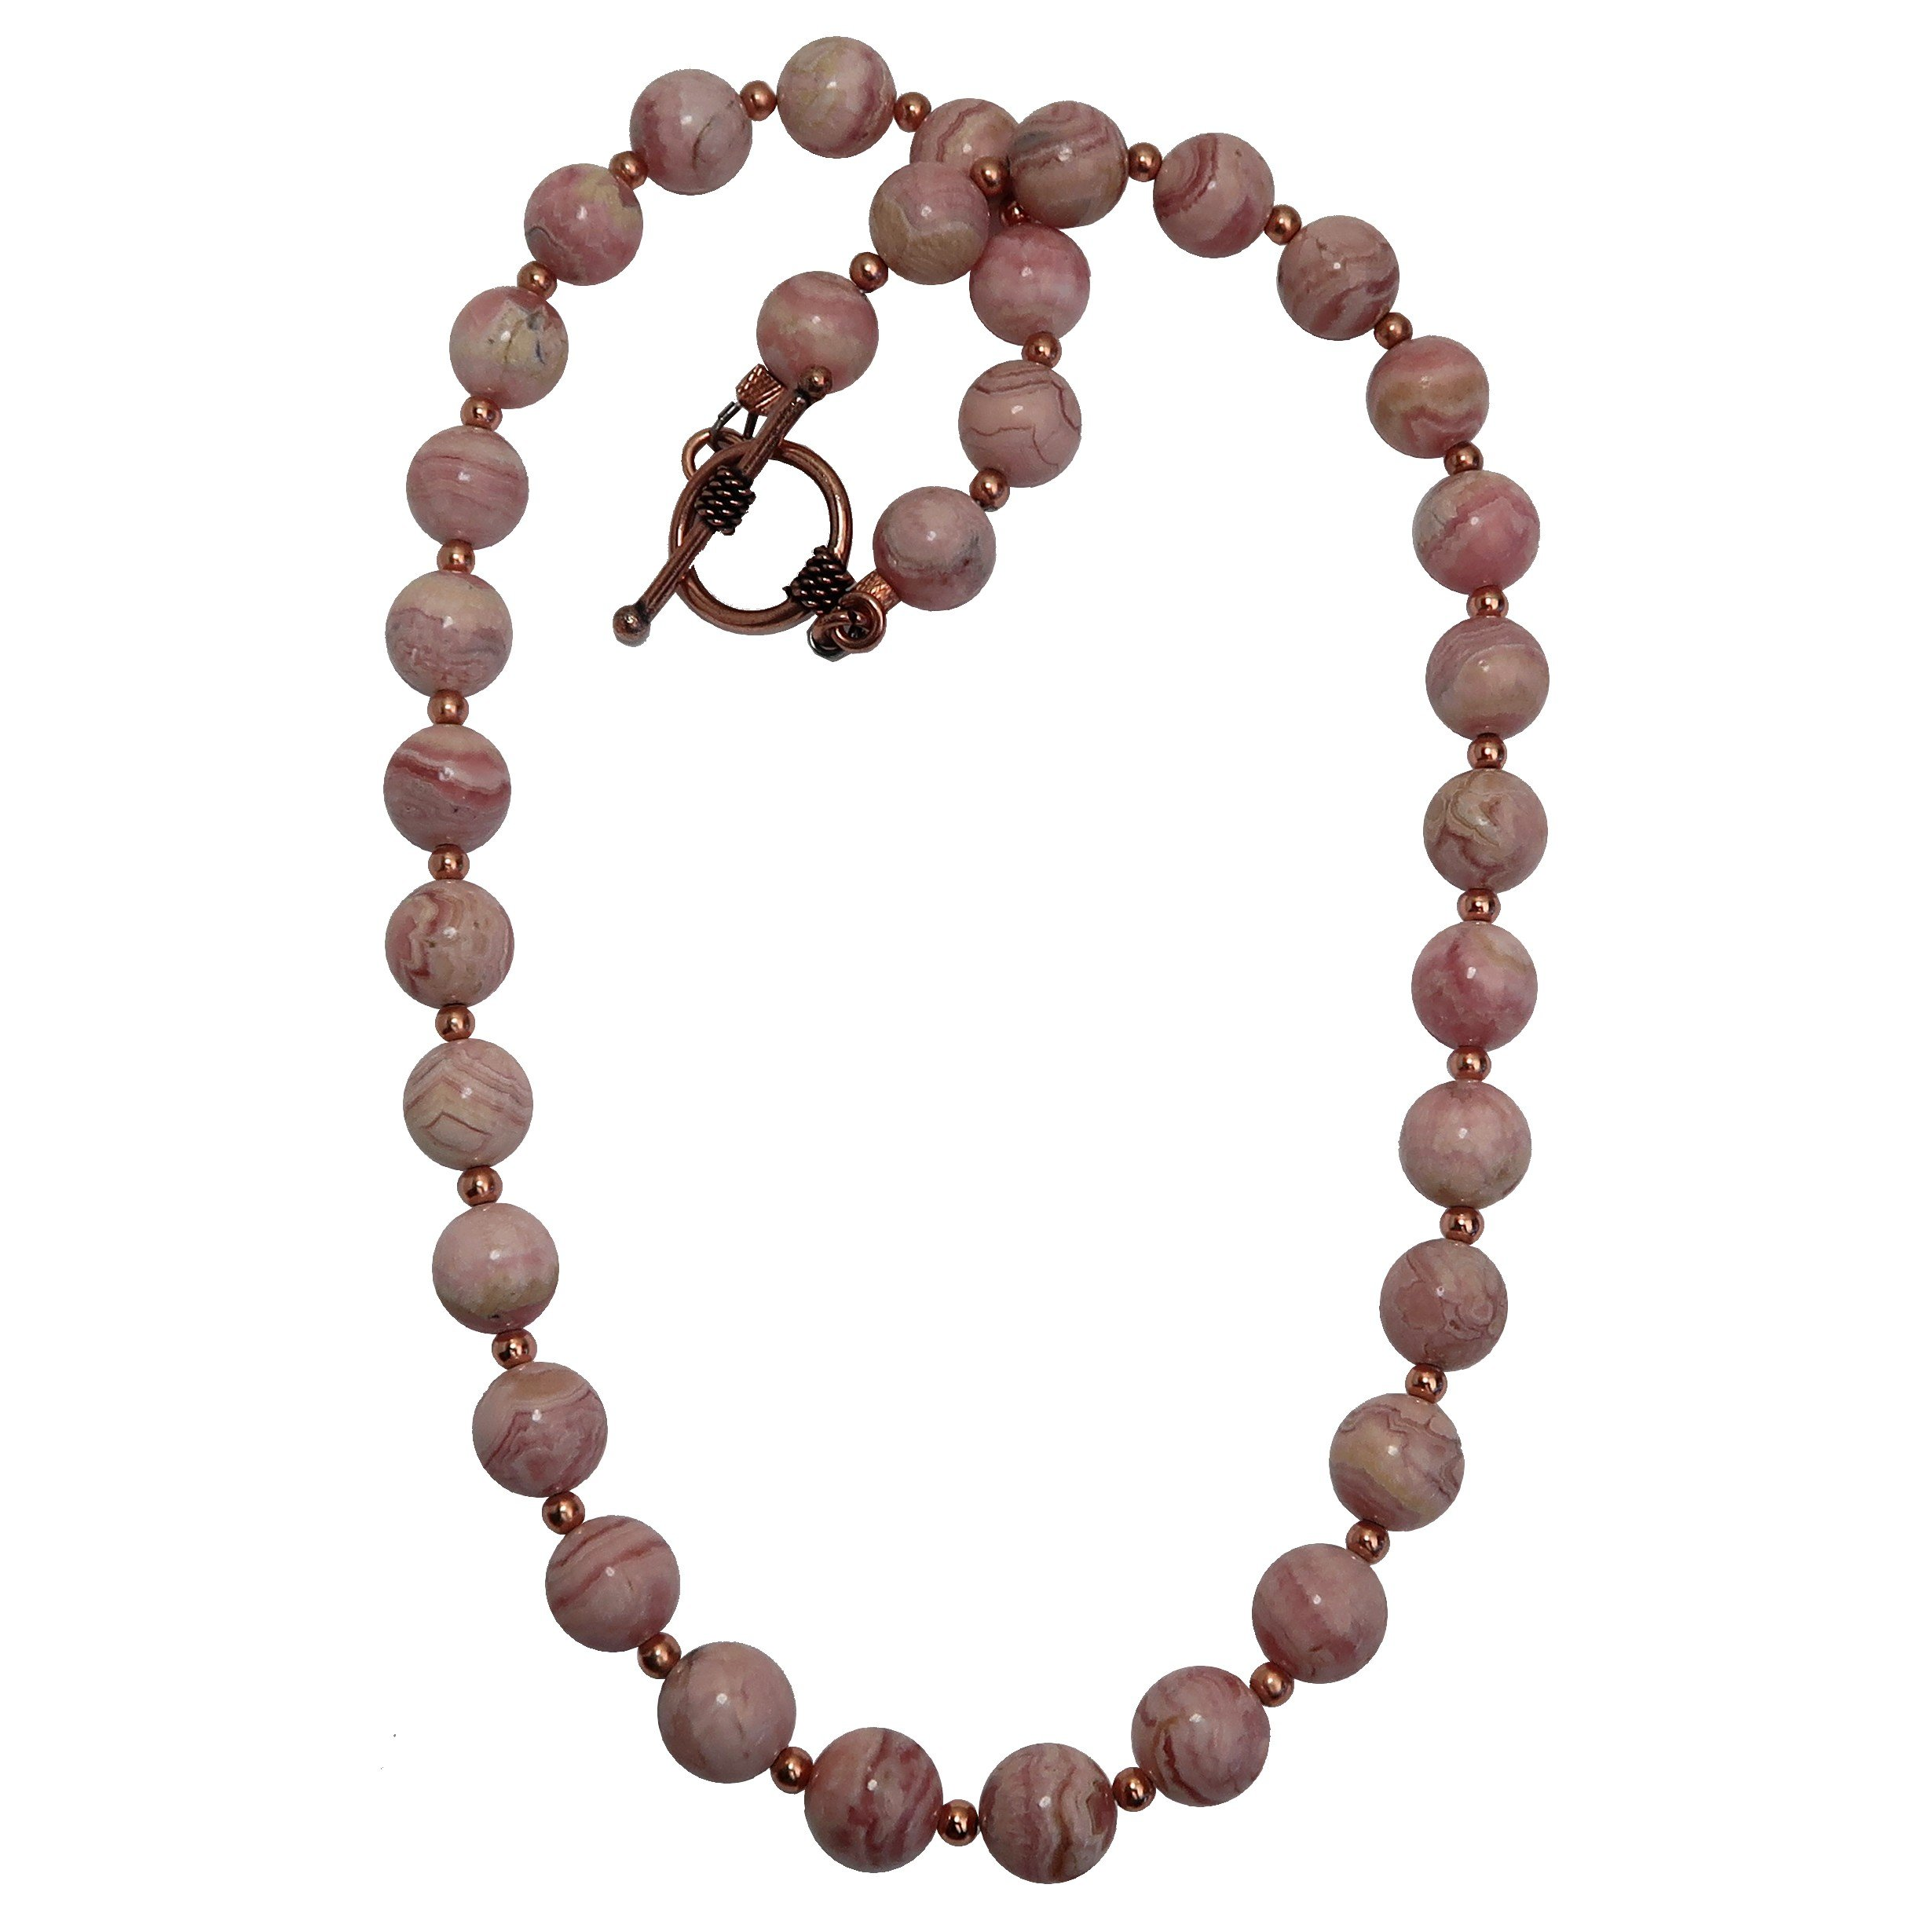 Satin Crystals Rhodochrosite Necklace Boutique Deluxe Pink Genuine Gemstone Round Beaded Copper B01 (17)